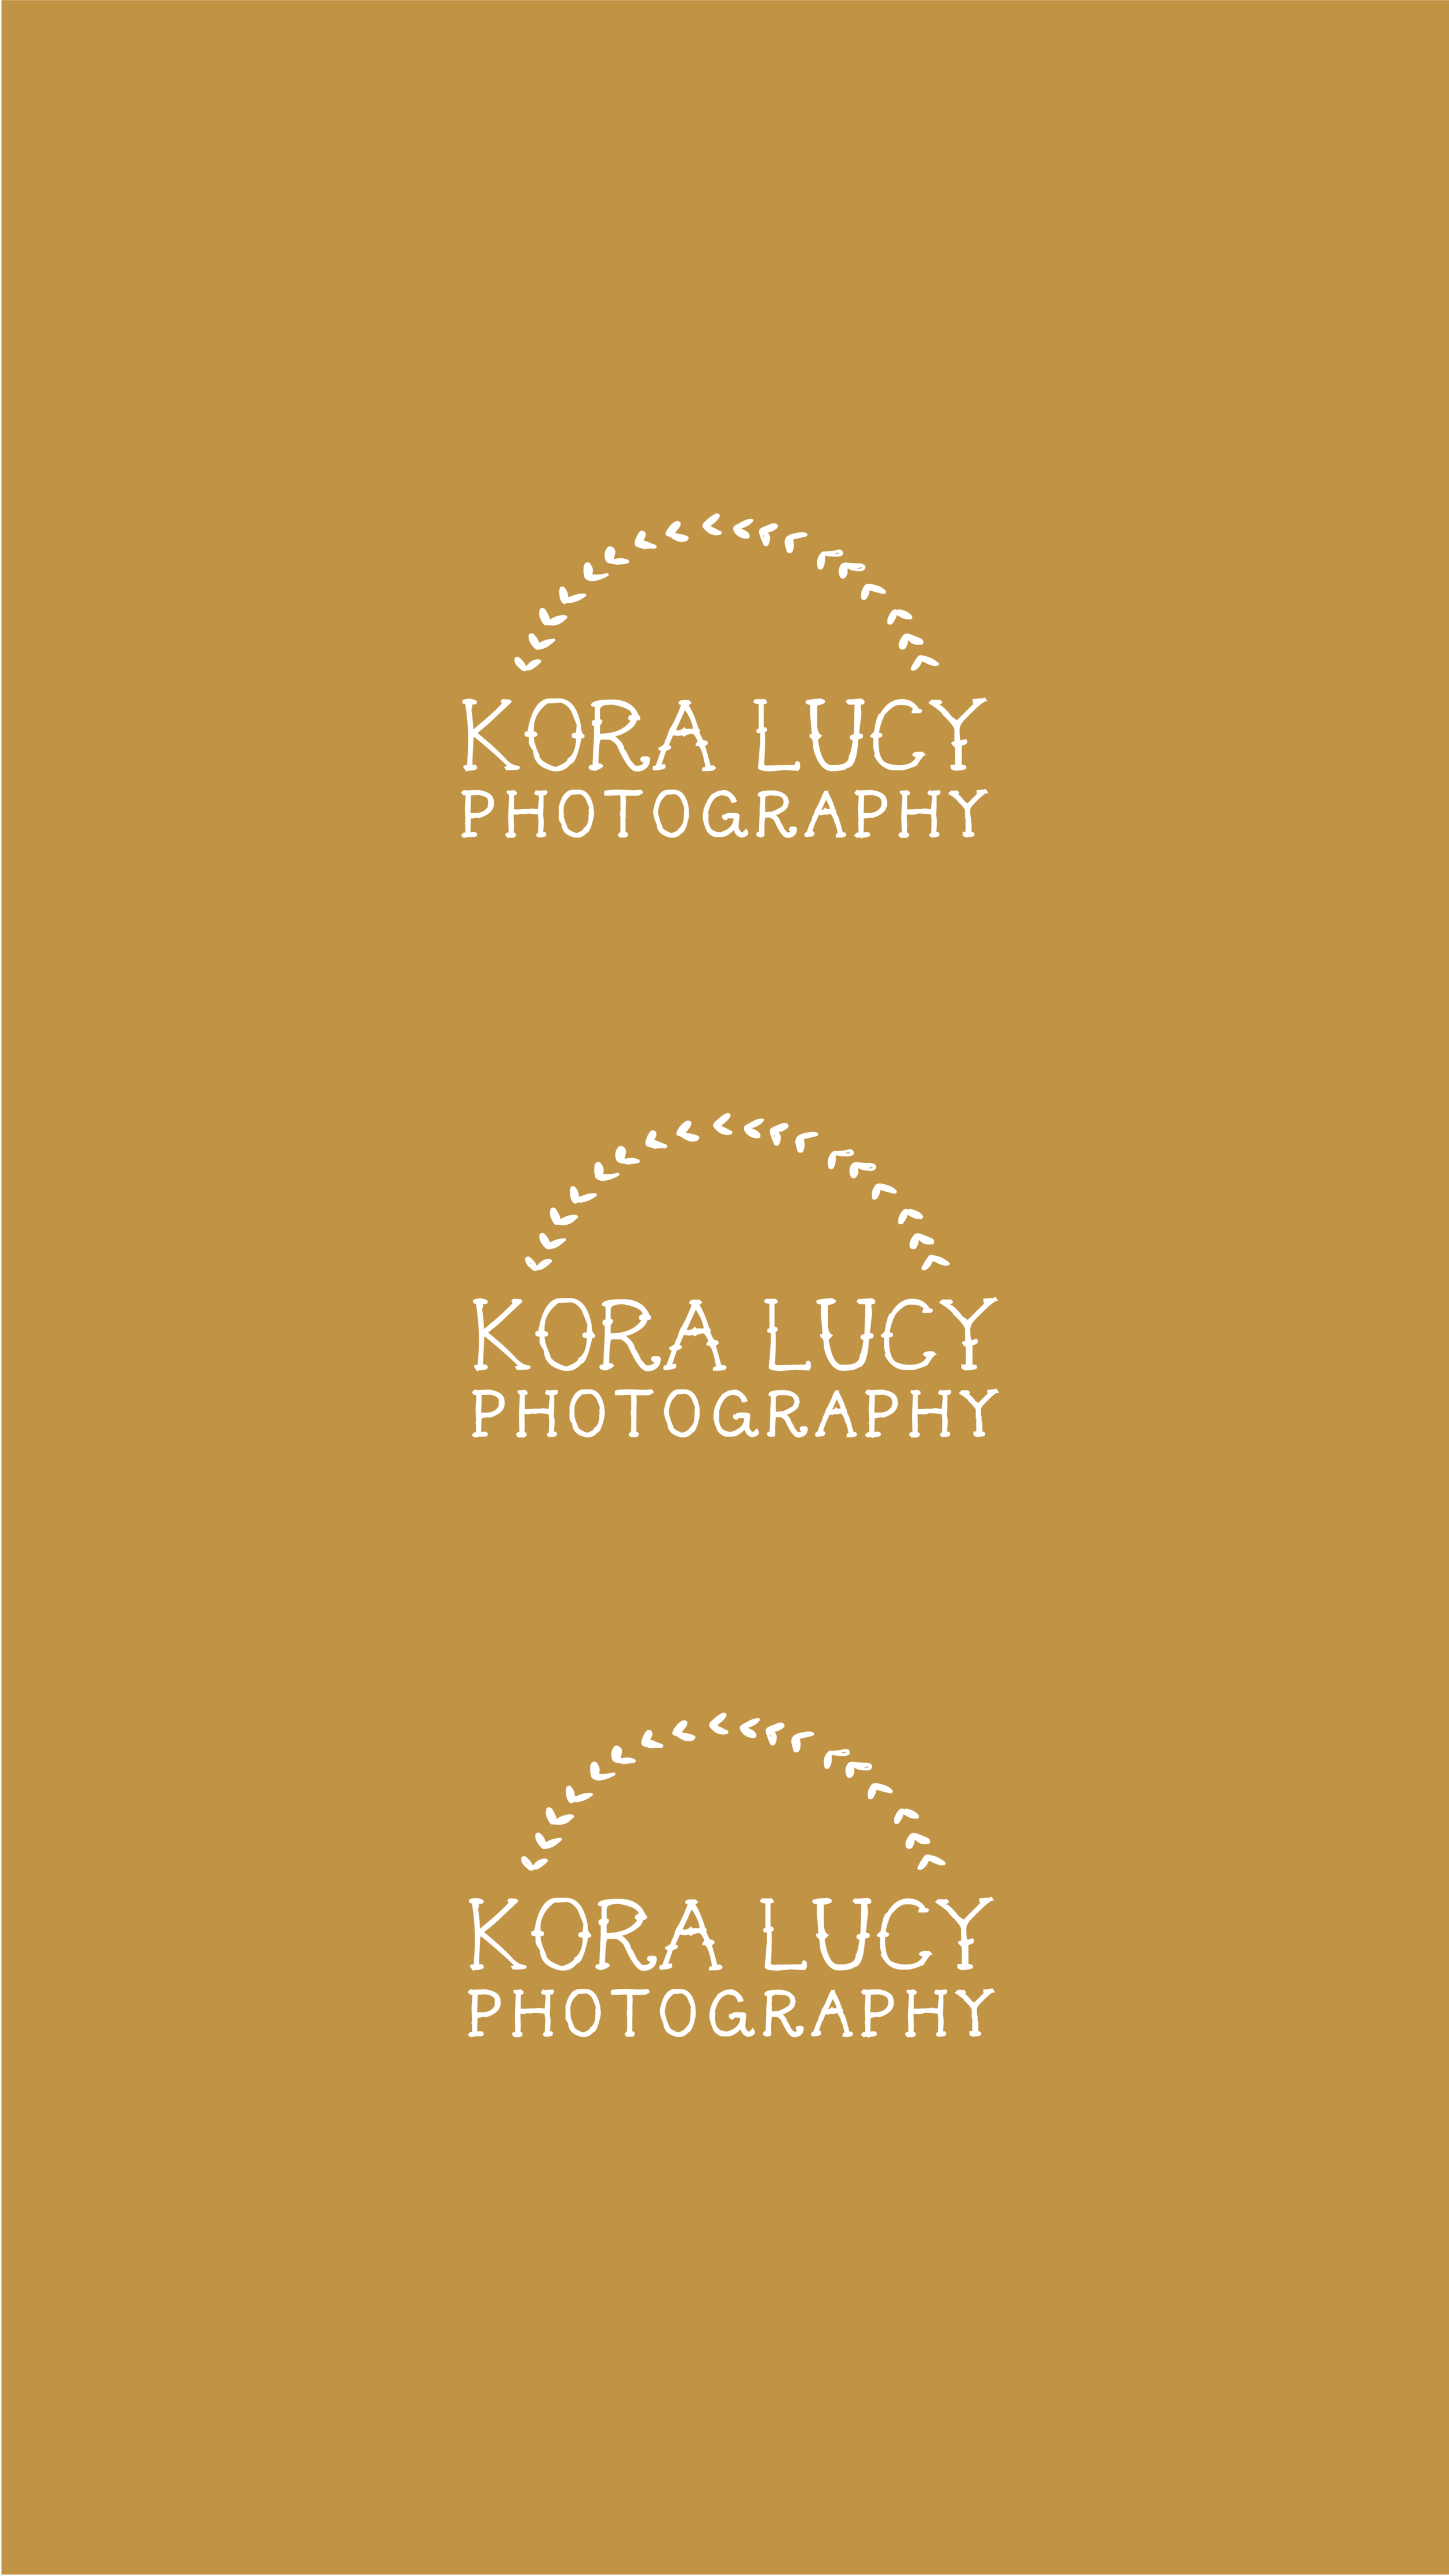 kora-lucy-photography-blank-paige-design-2